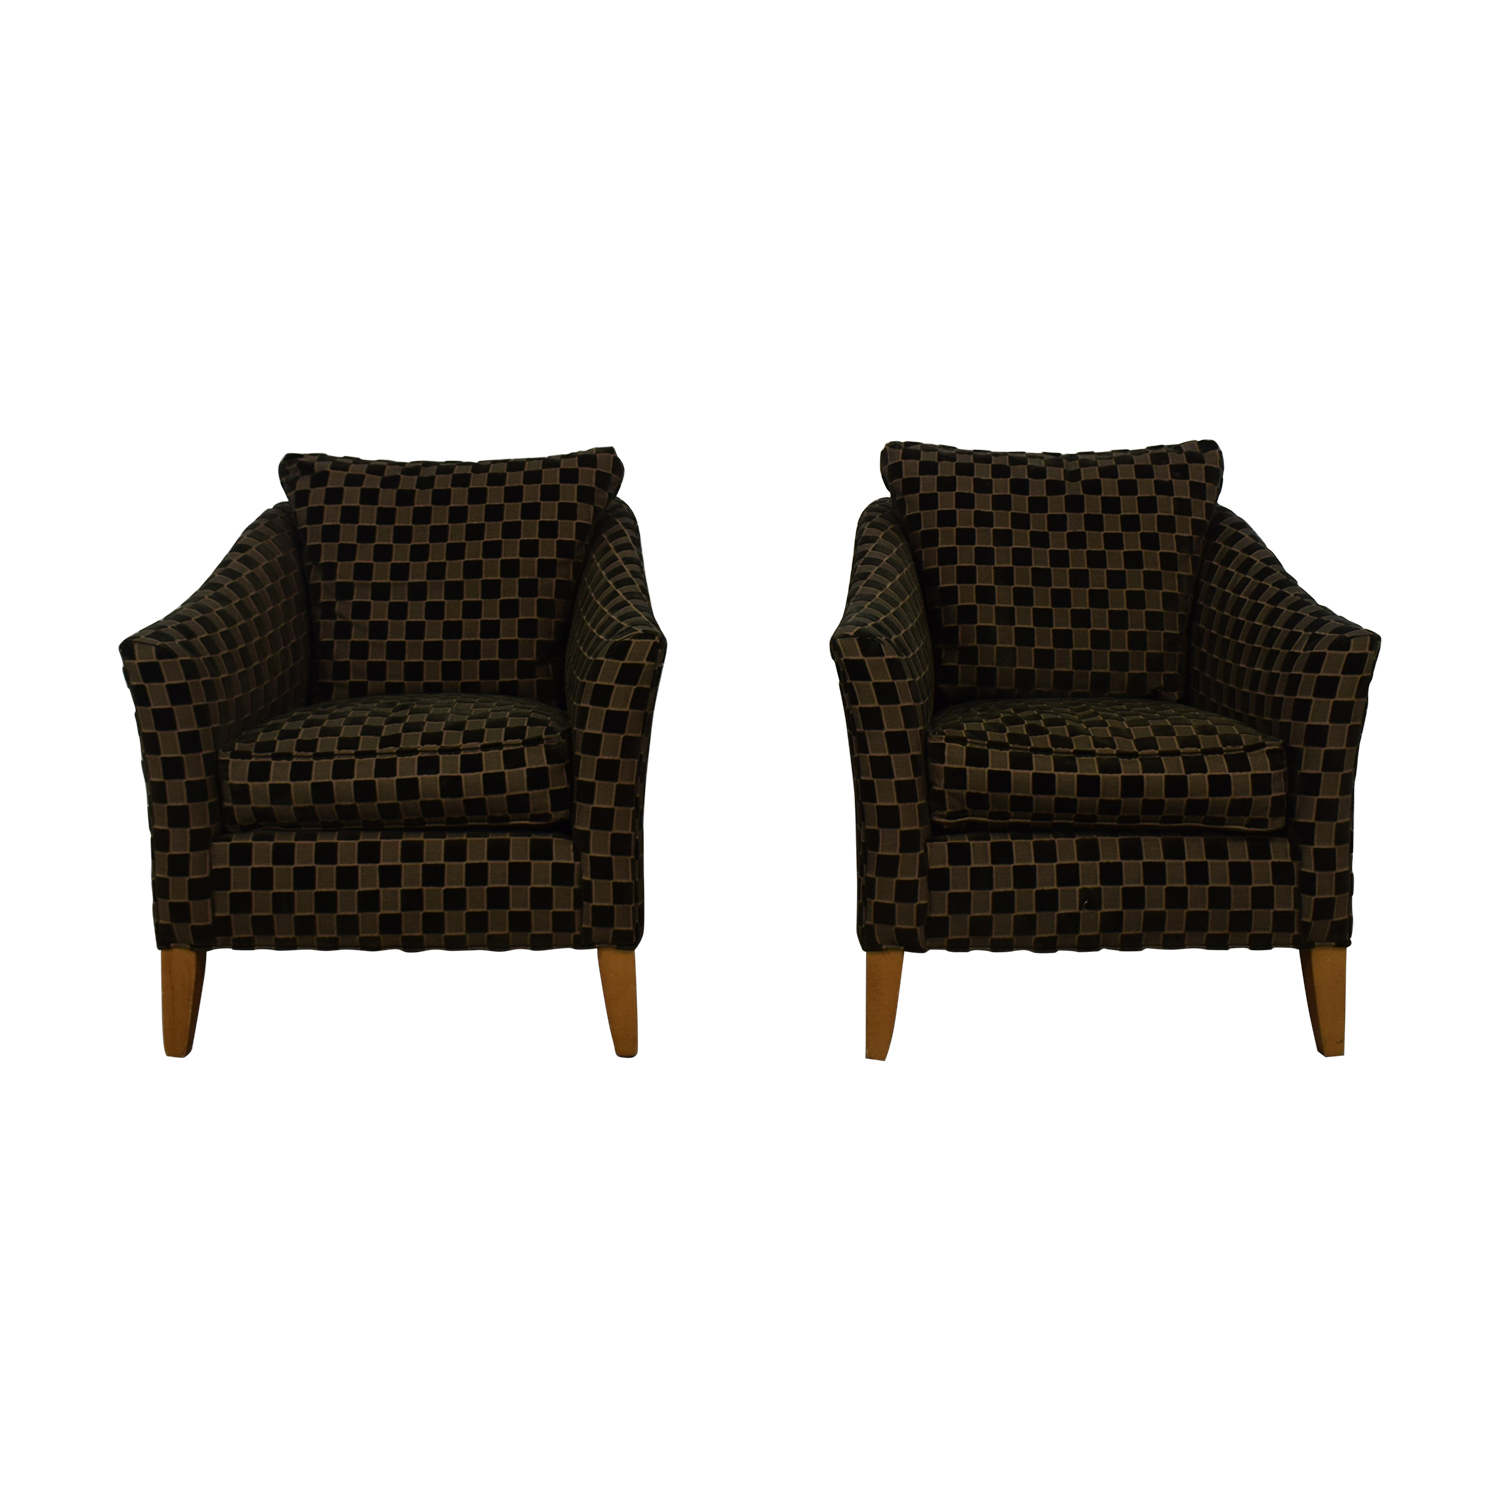 buy Ethan Allen Checkered Accent Chairs Ethan Allen Chairs